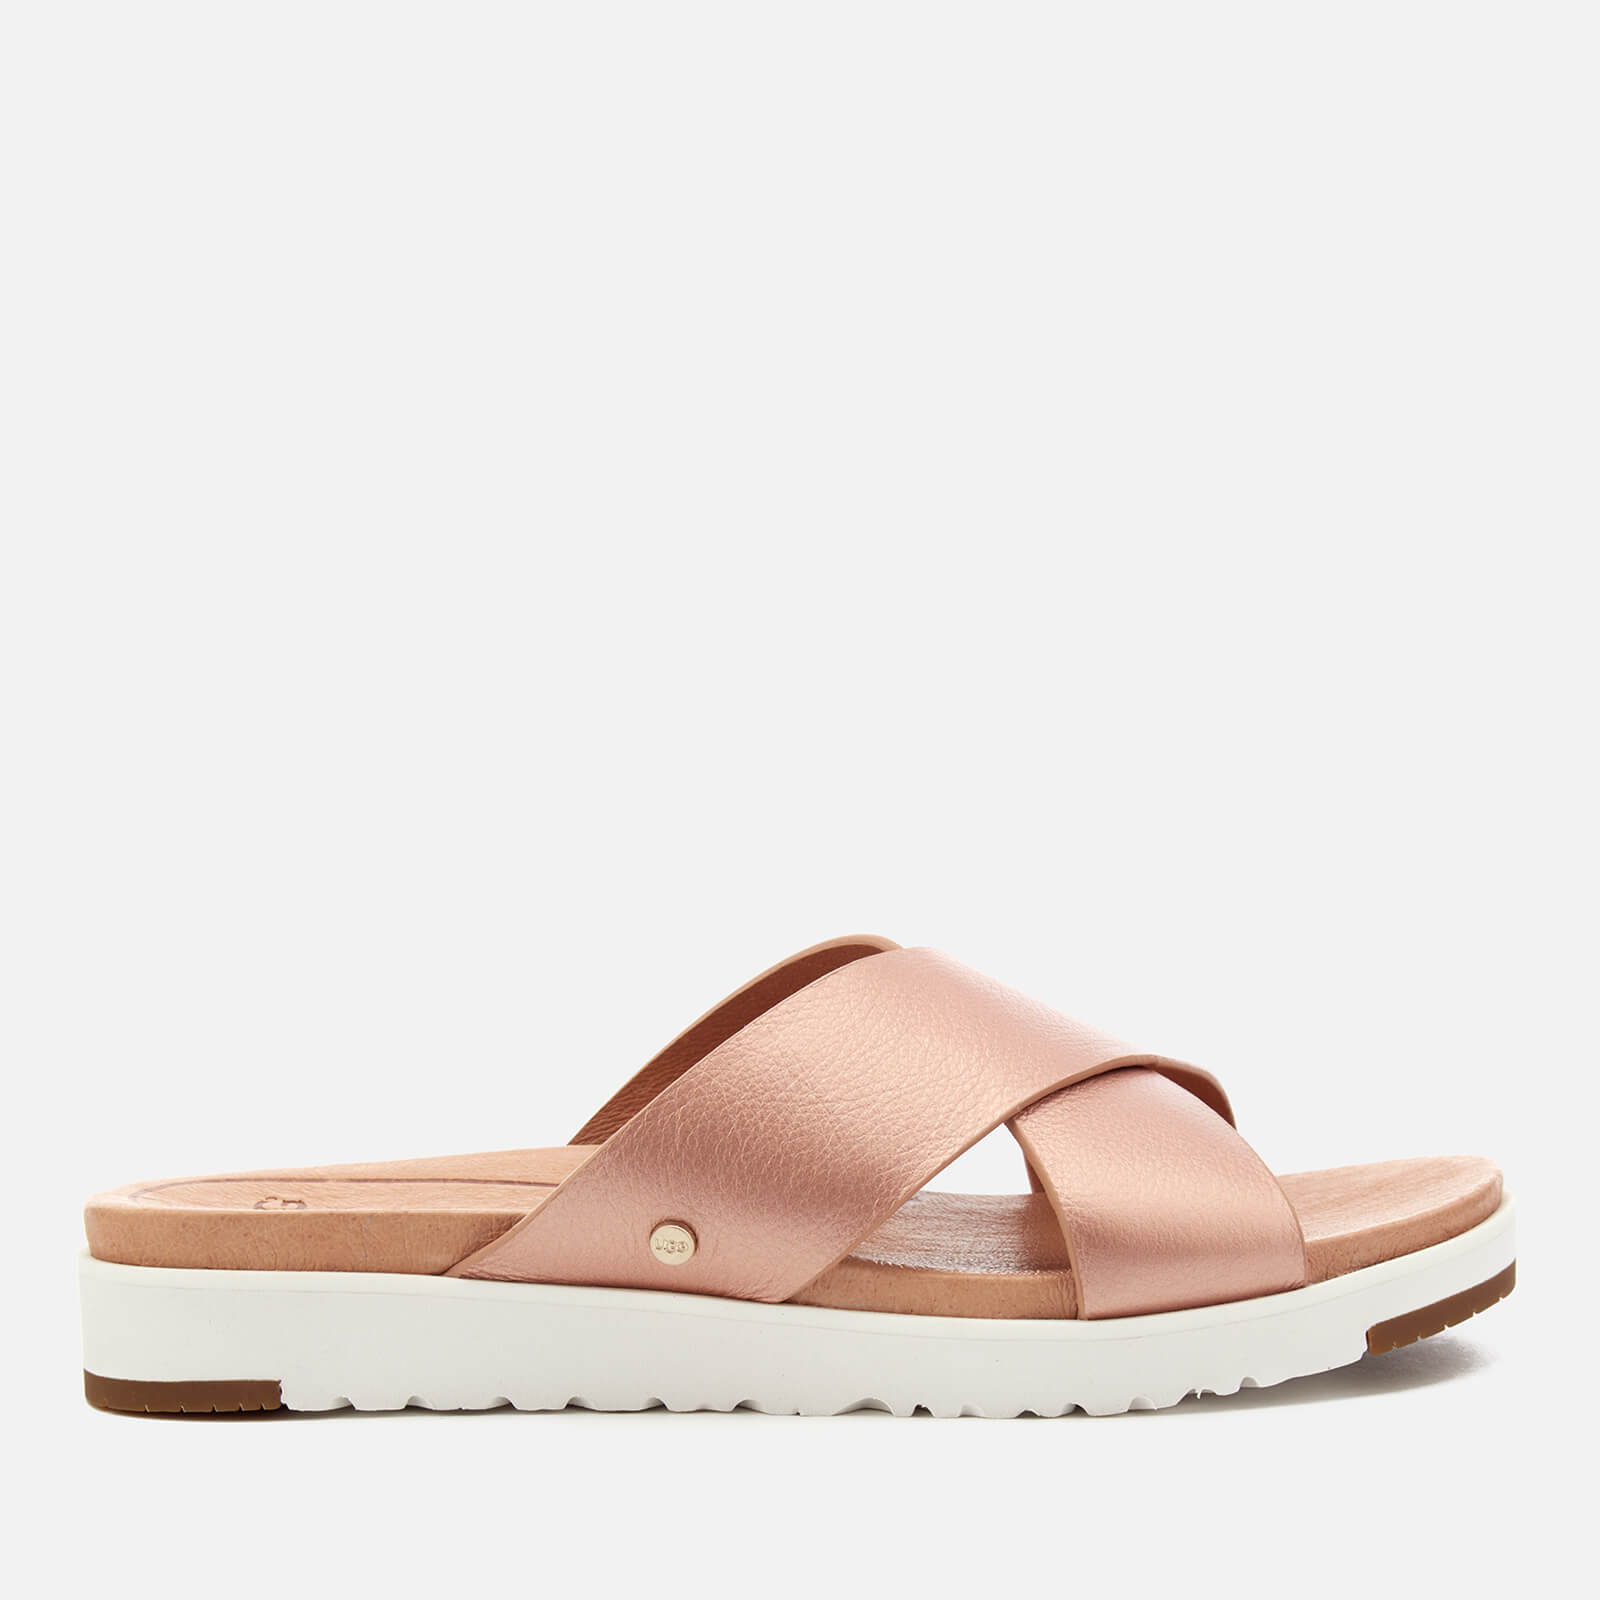 93976bd28a7 UGG Women's Kari Metallic Cross Strap Slide Sandals - Rose Gold